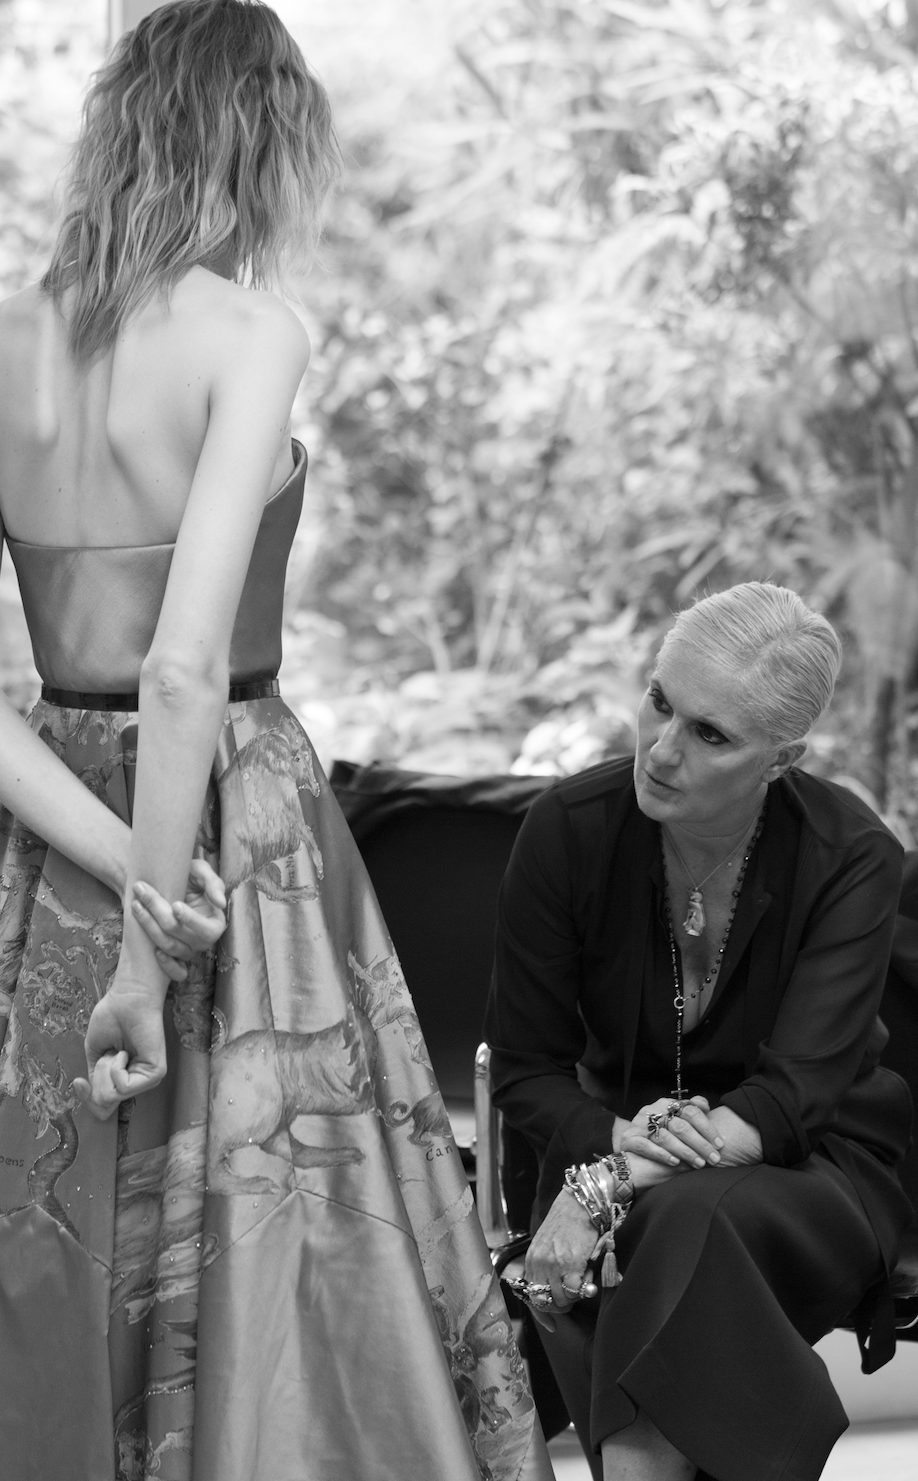 Dior Haute Couture Making Of Image - Fall/Winter 2017